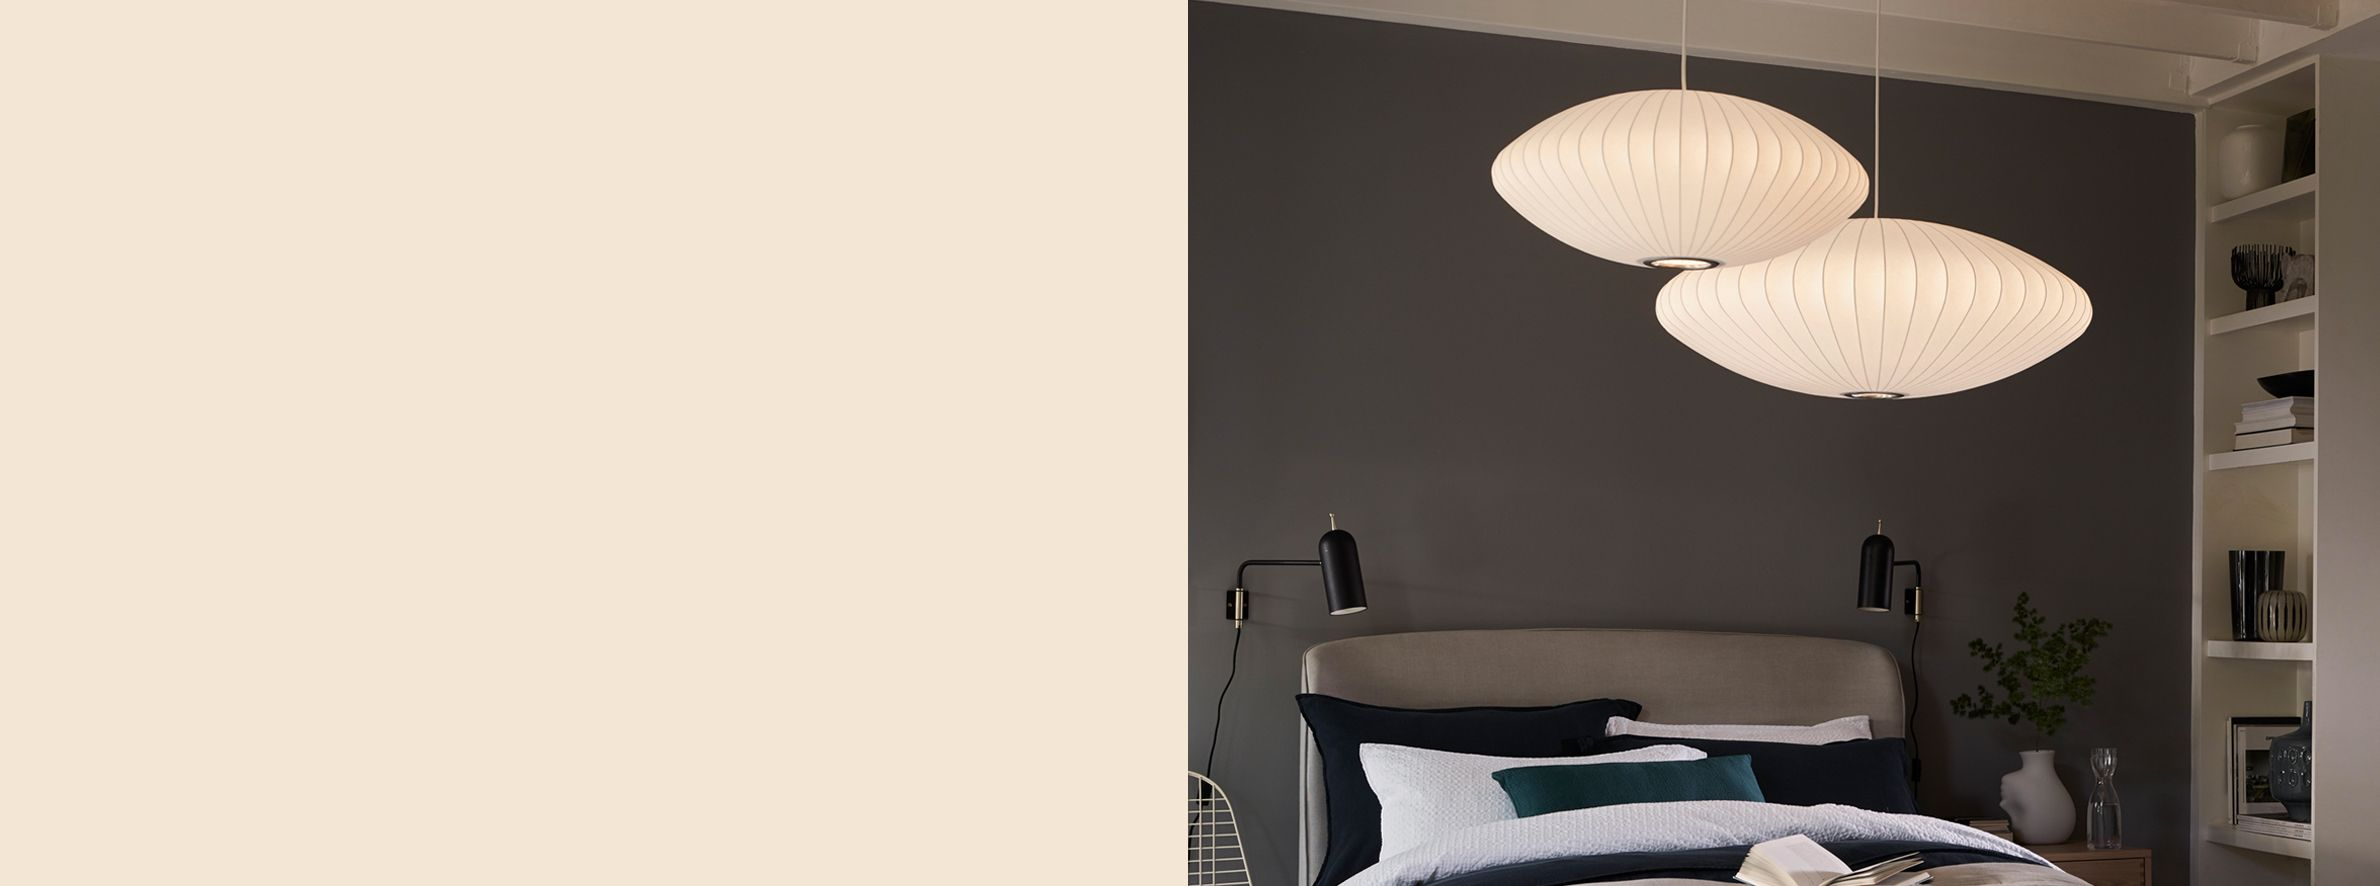 Ceiling Lighting John Lewis Partners - Lamp shades for bedrooms